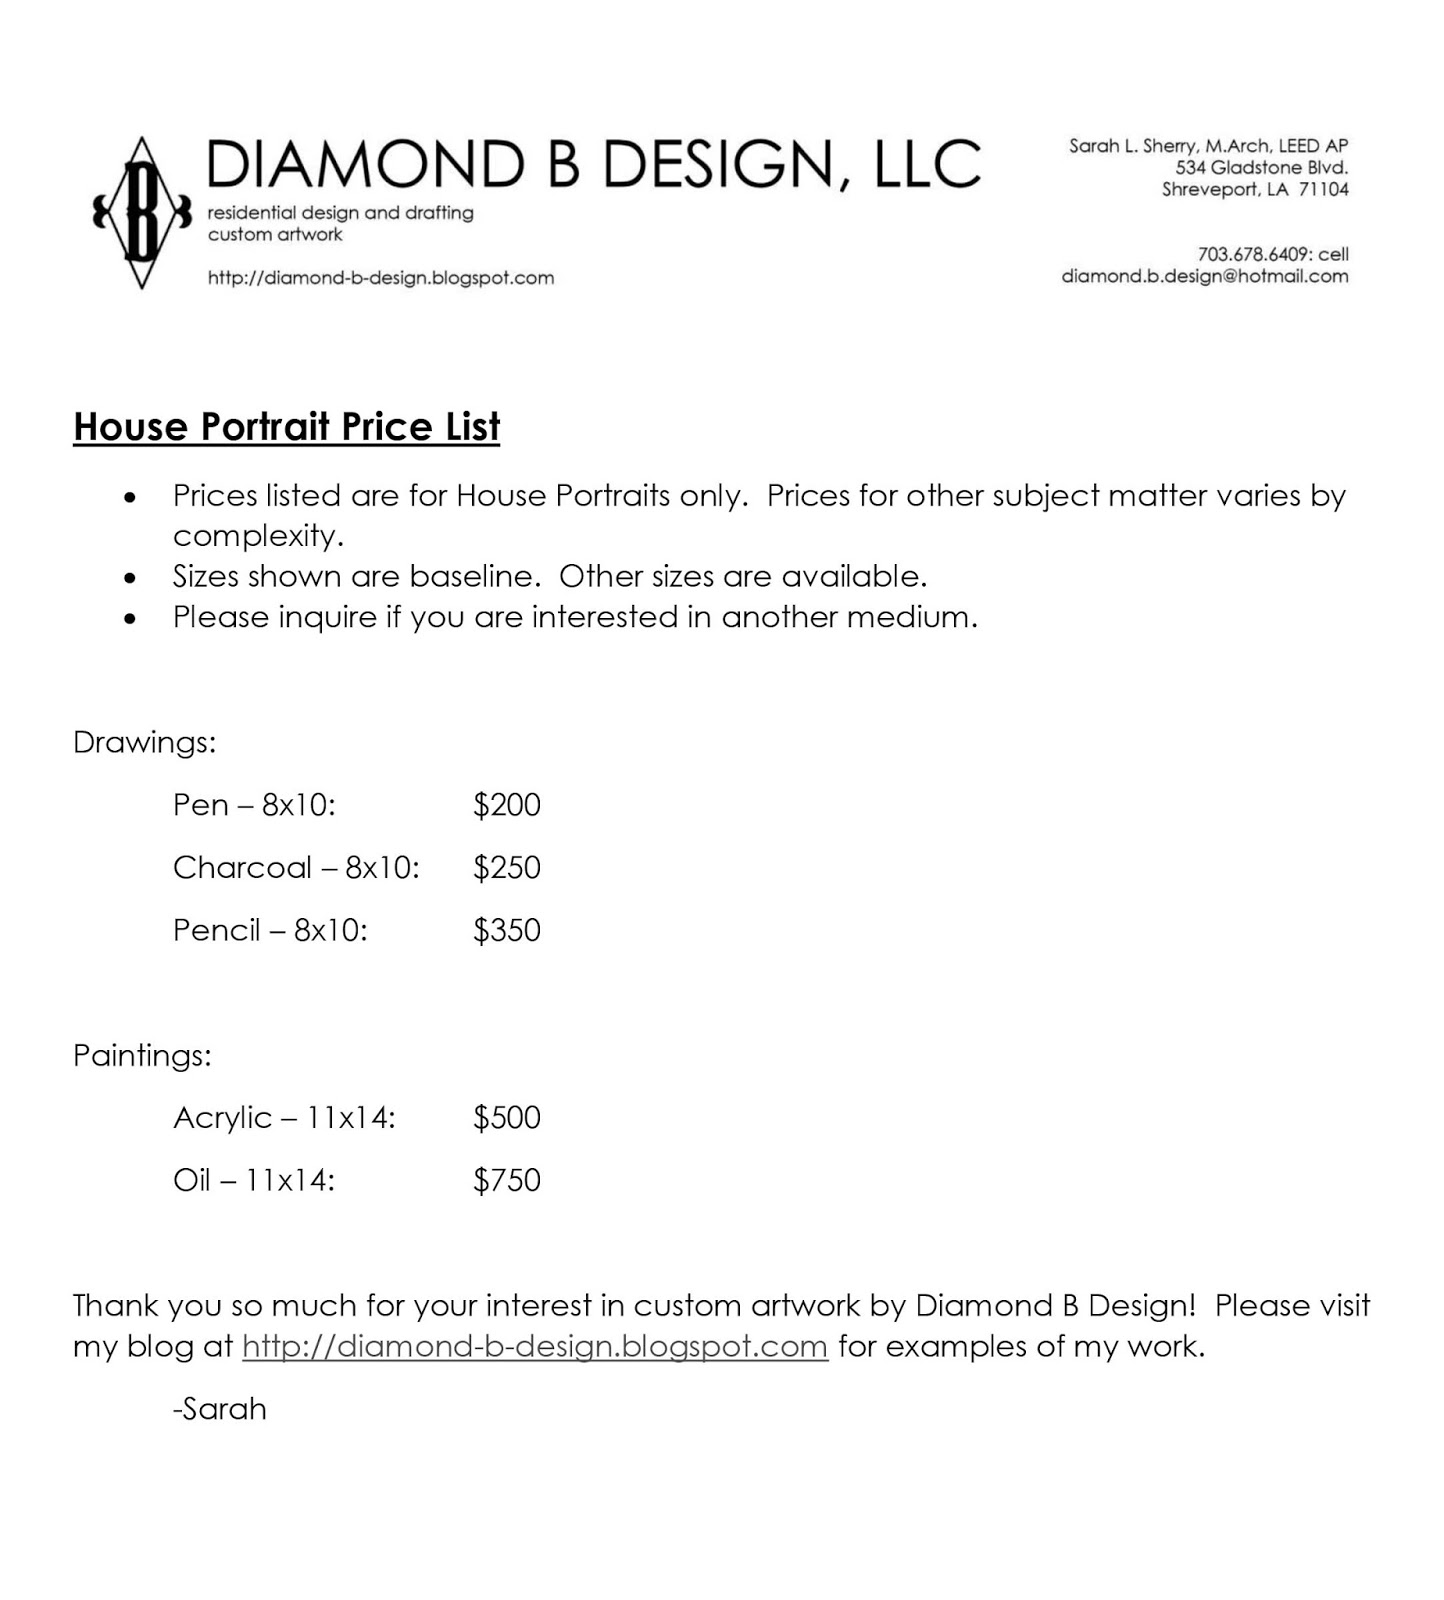 diamond pty templates free word the price rough pdf excel chart guideline download ltd in adtec list from